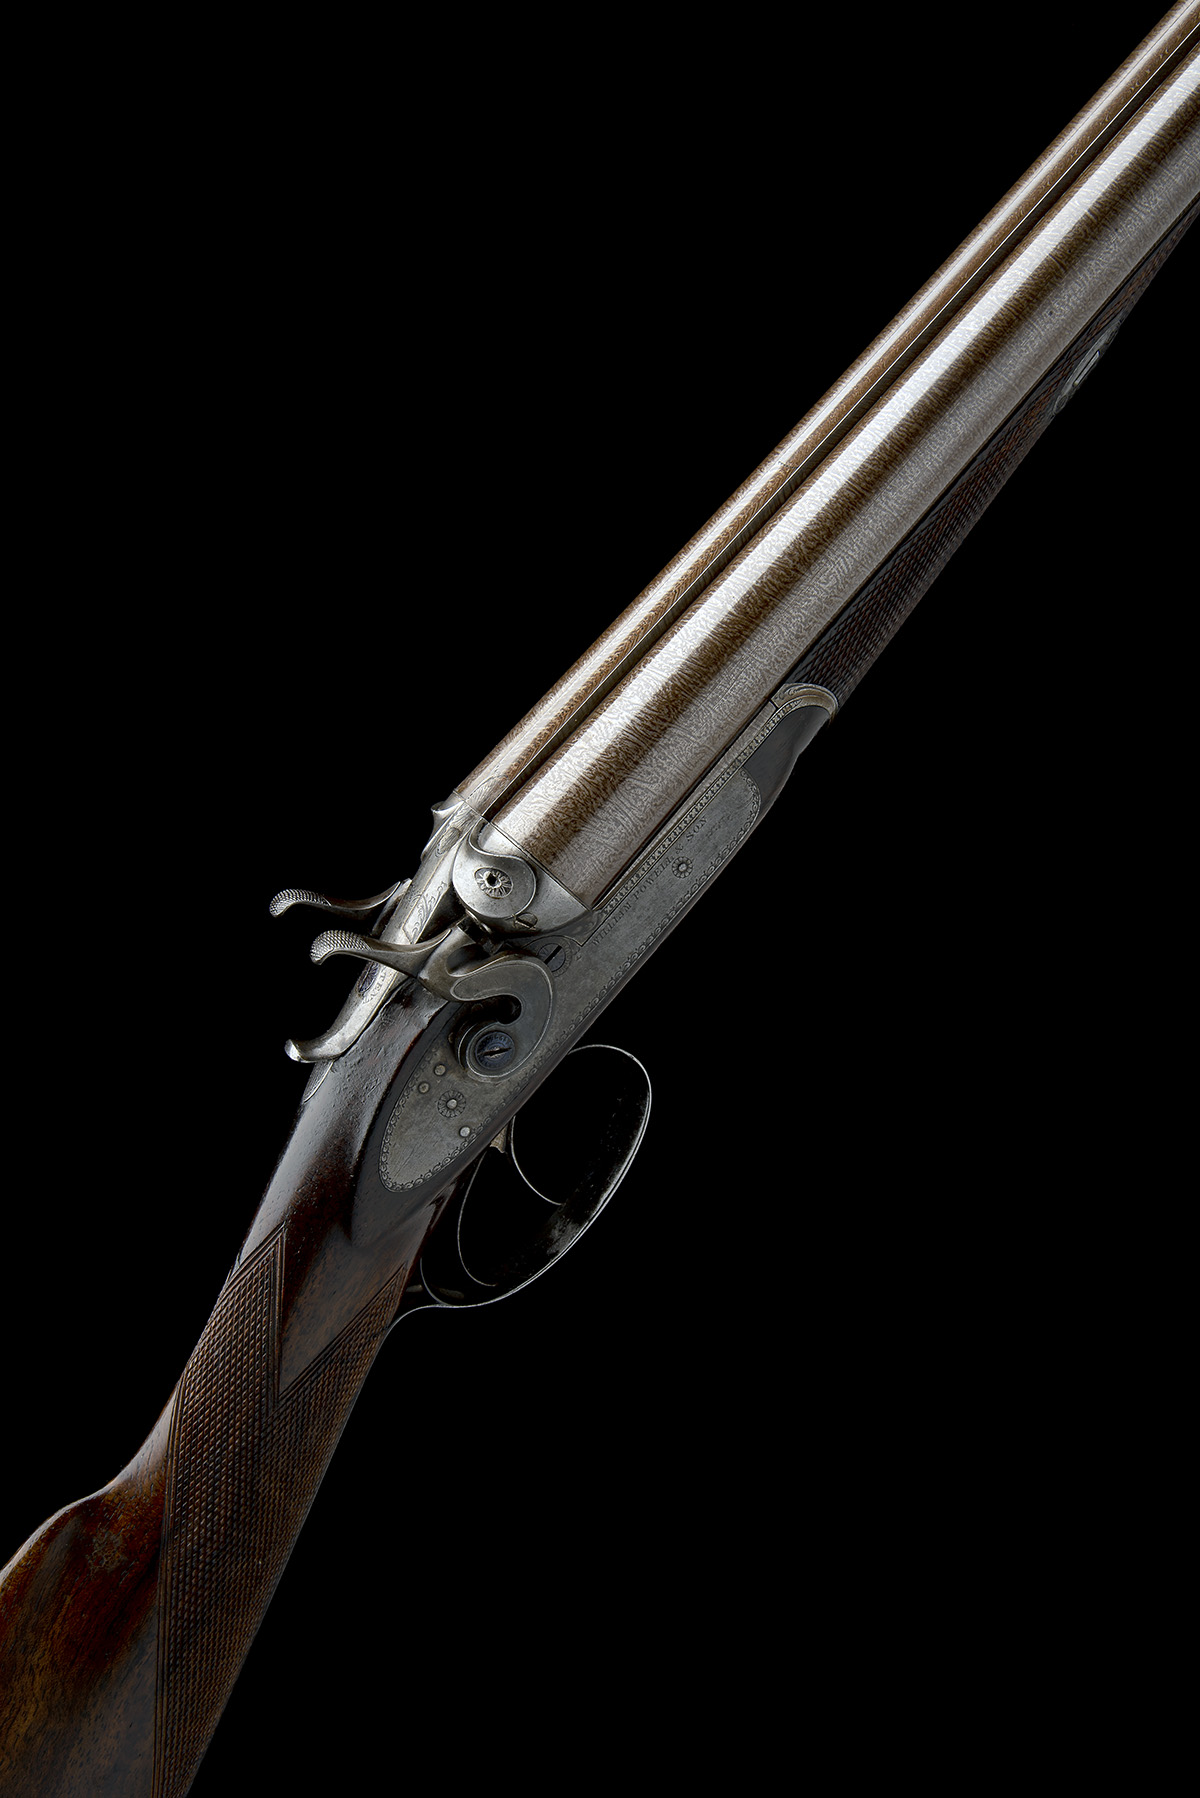 WILLIAM POWELL & SON A 12-BORE 1864 PATENT BAR-IN-WOOD LIFT-UP TOPLEVER ROTATING SINGLE BOLT SNAP-